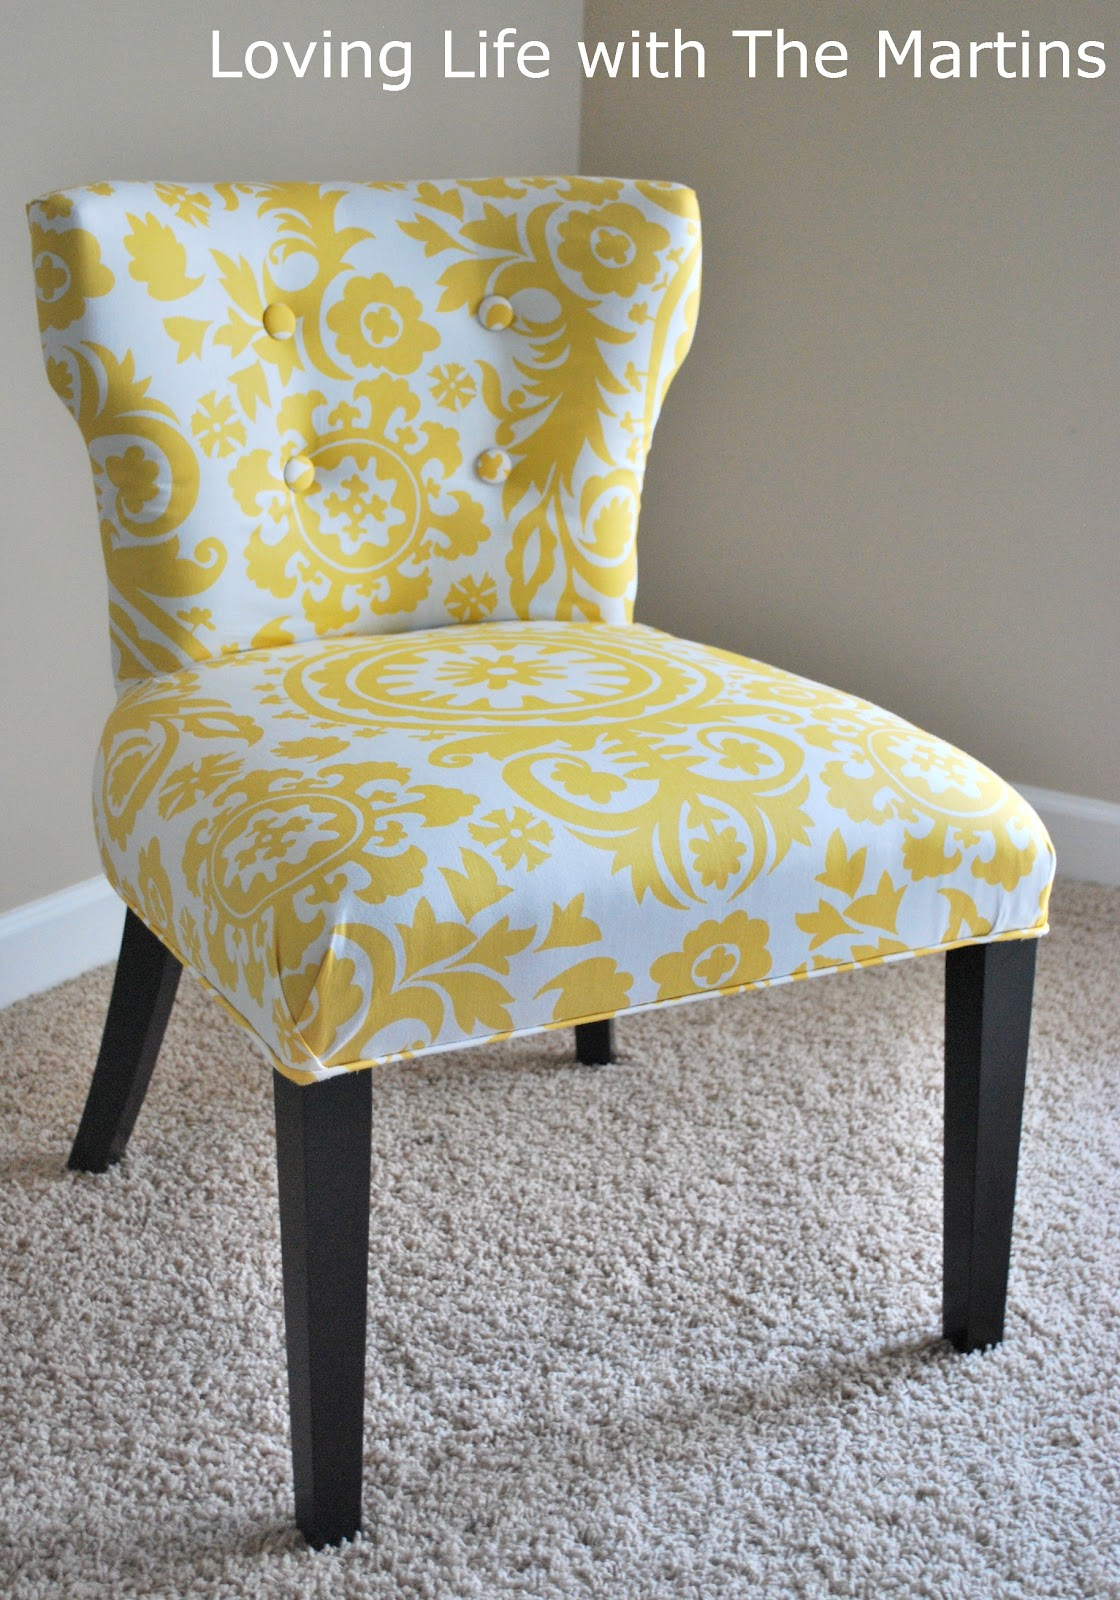 Reupholstering A Chair Wood Side Loving Life With The Martins How To Reupholster